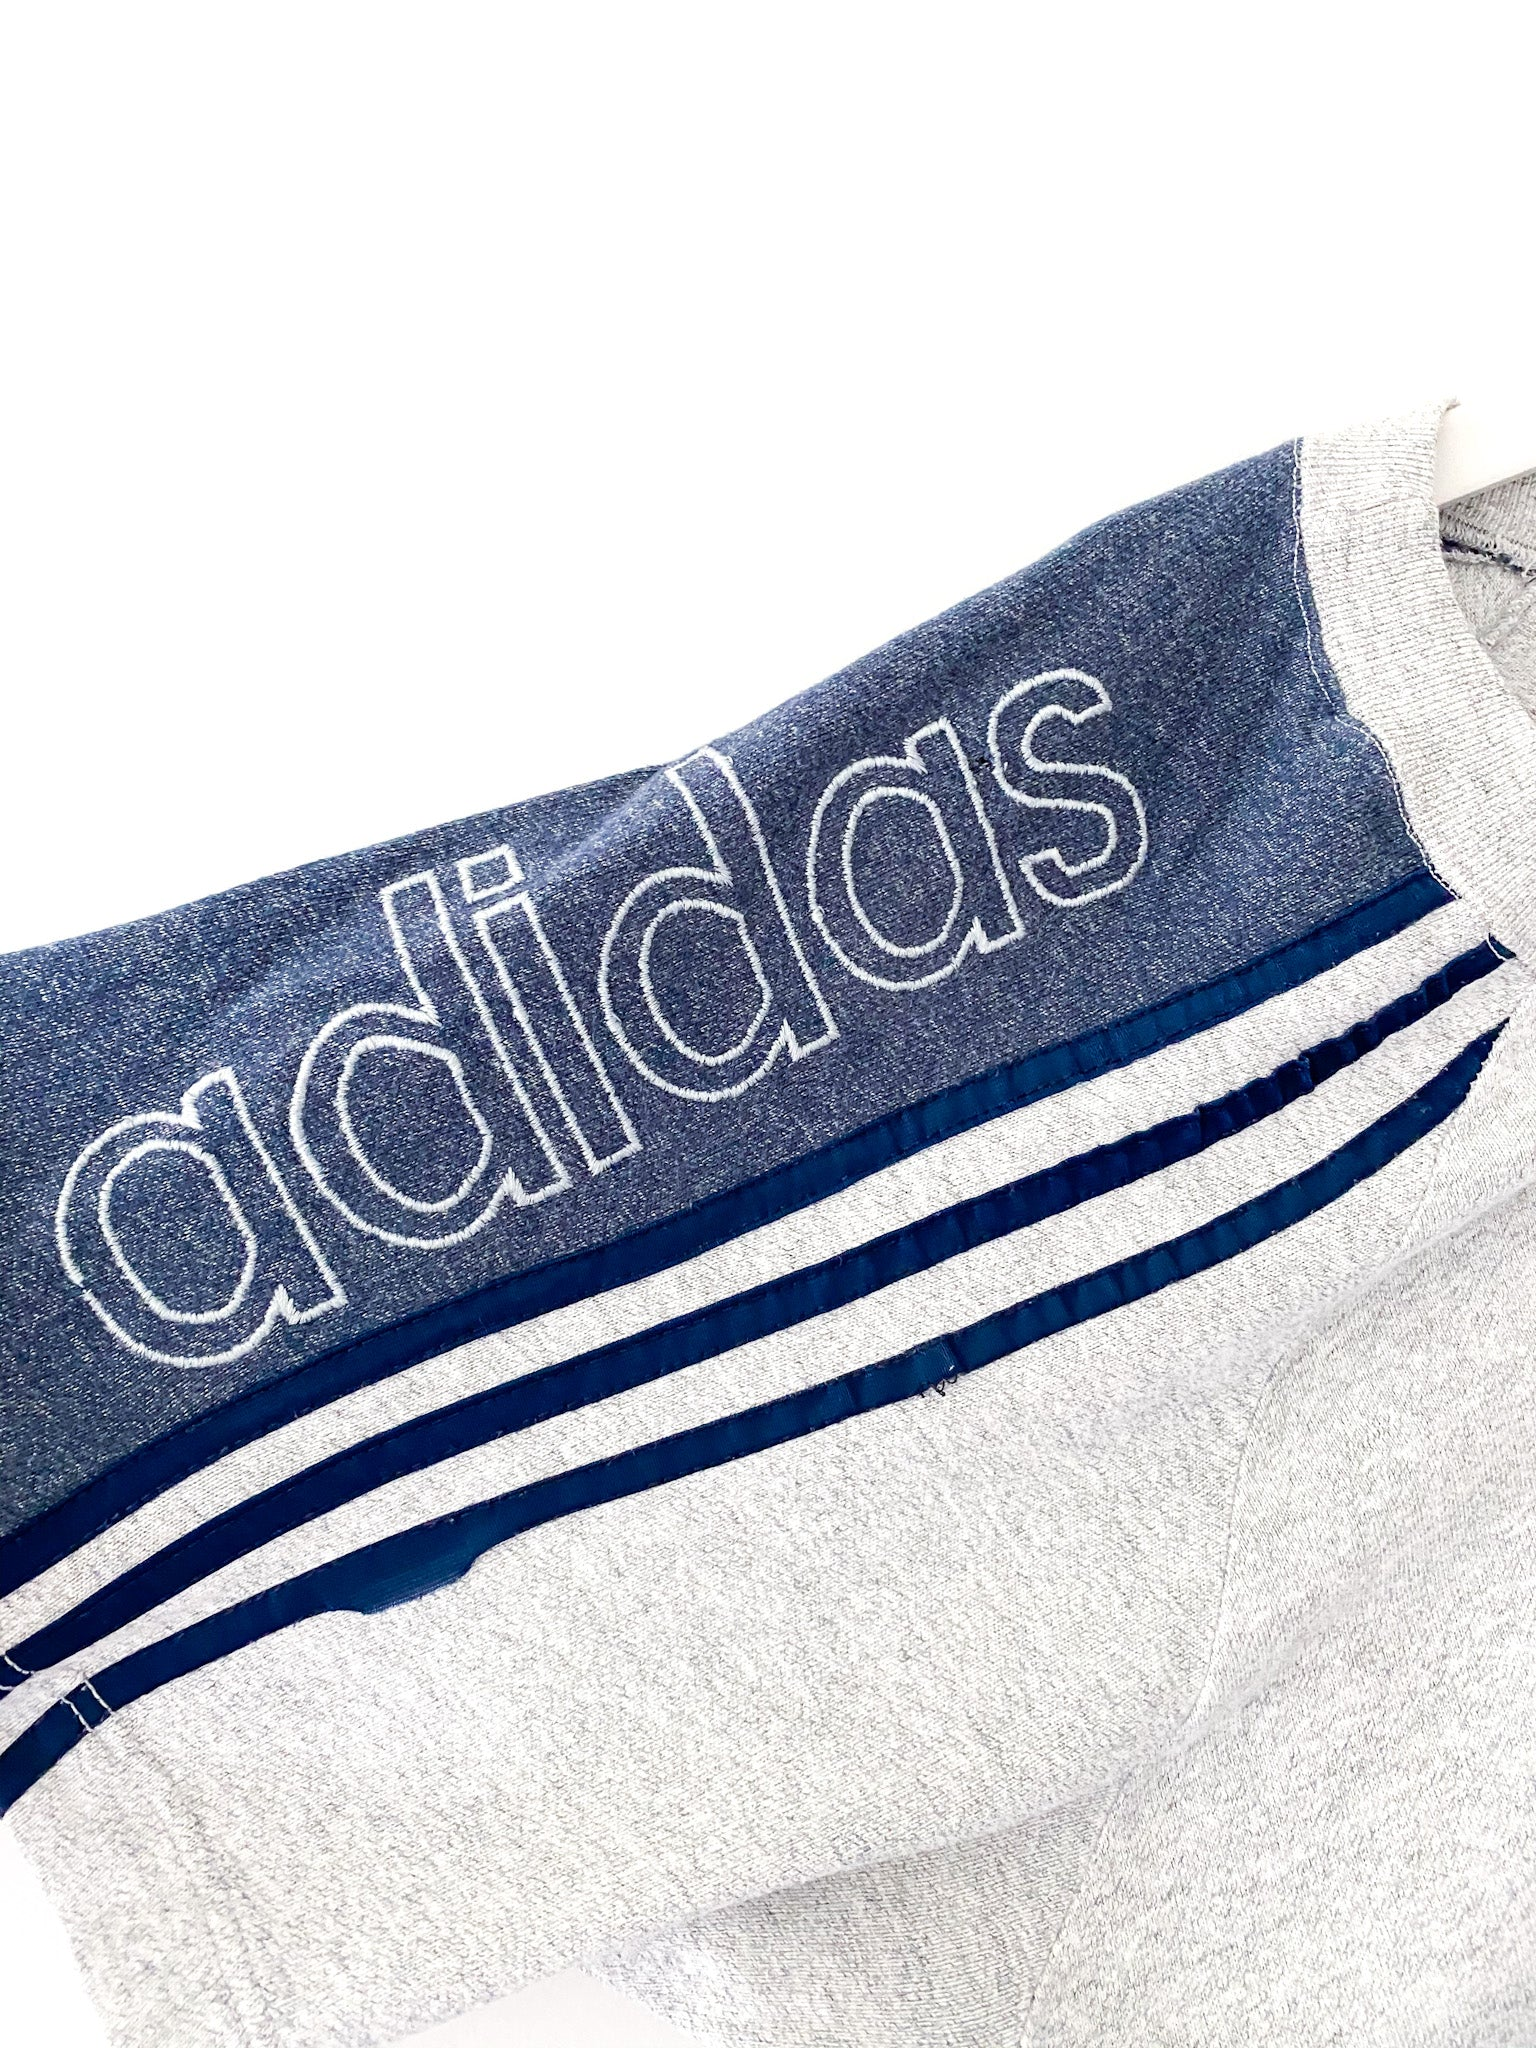 SPELLOUT ADIDAS RIBBED TEE (M)